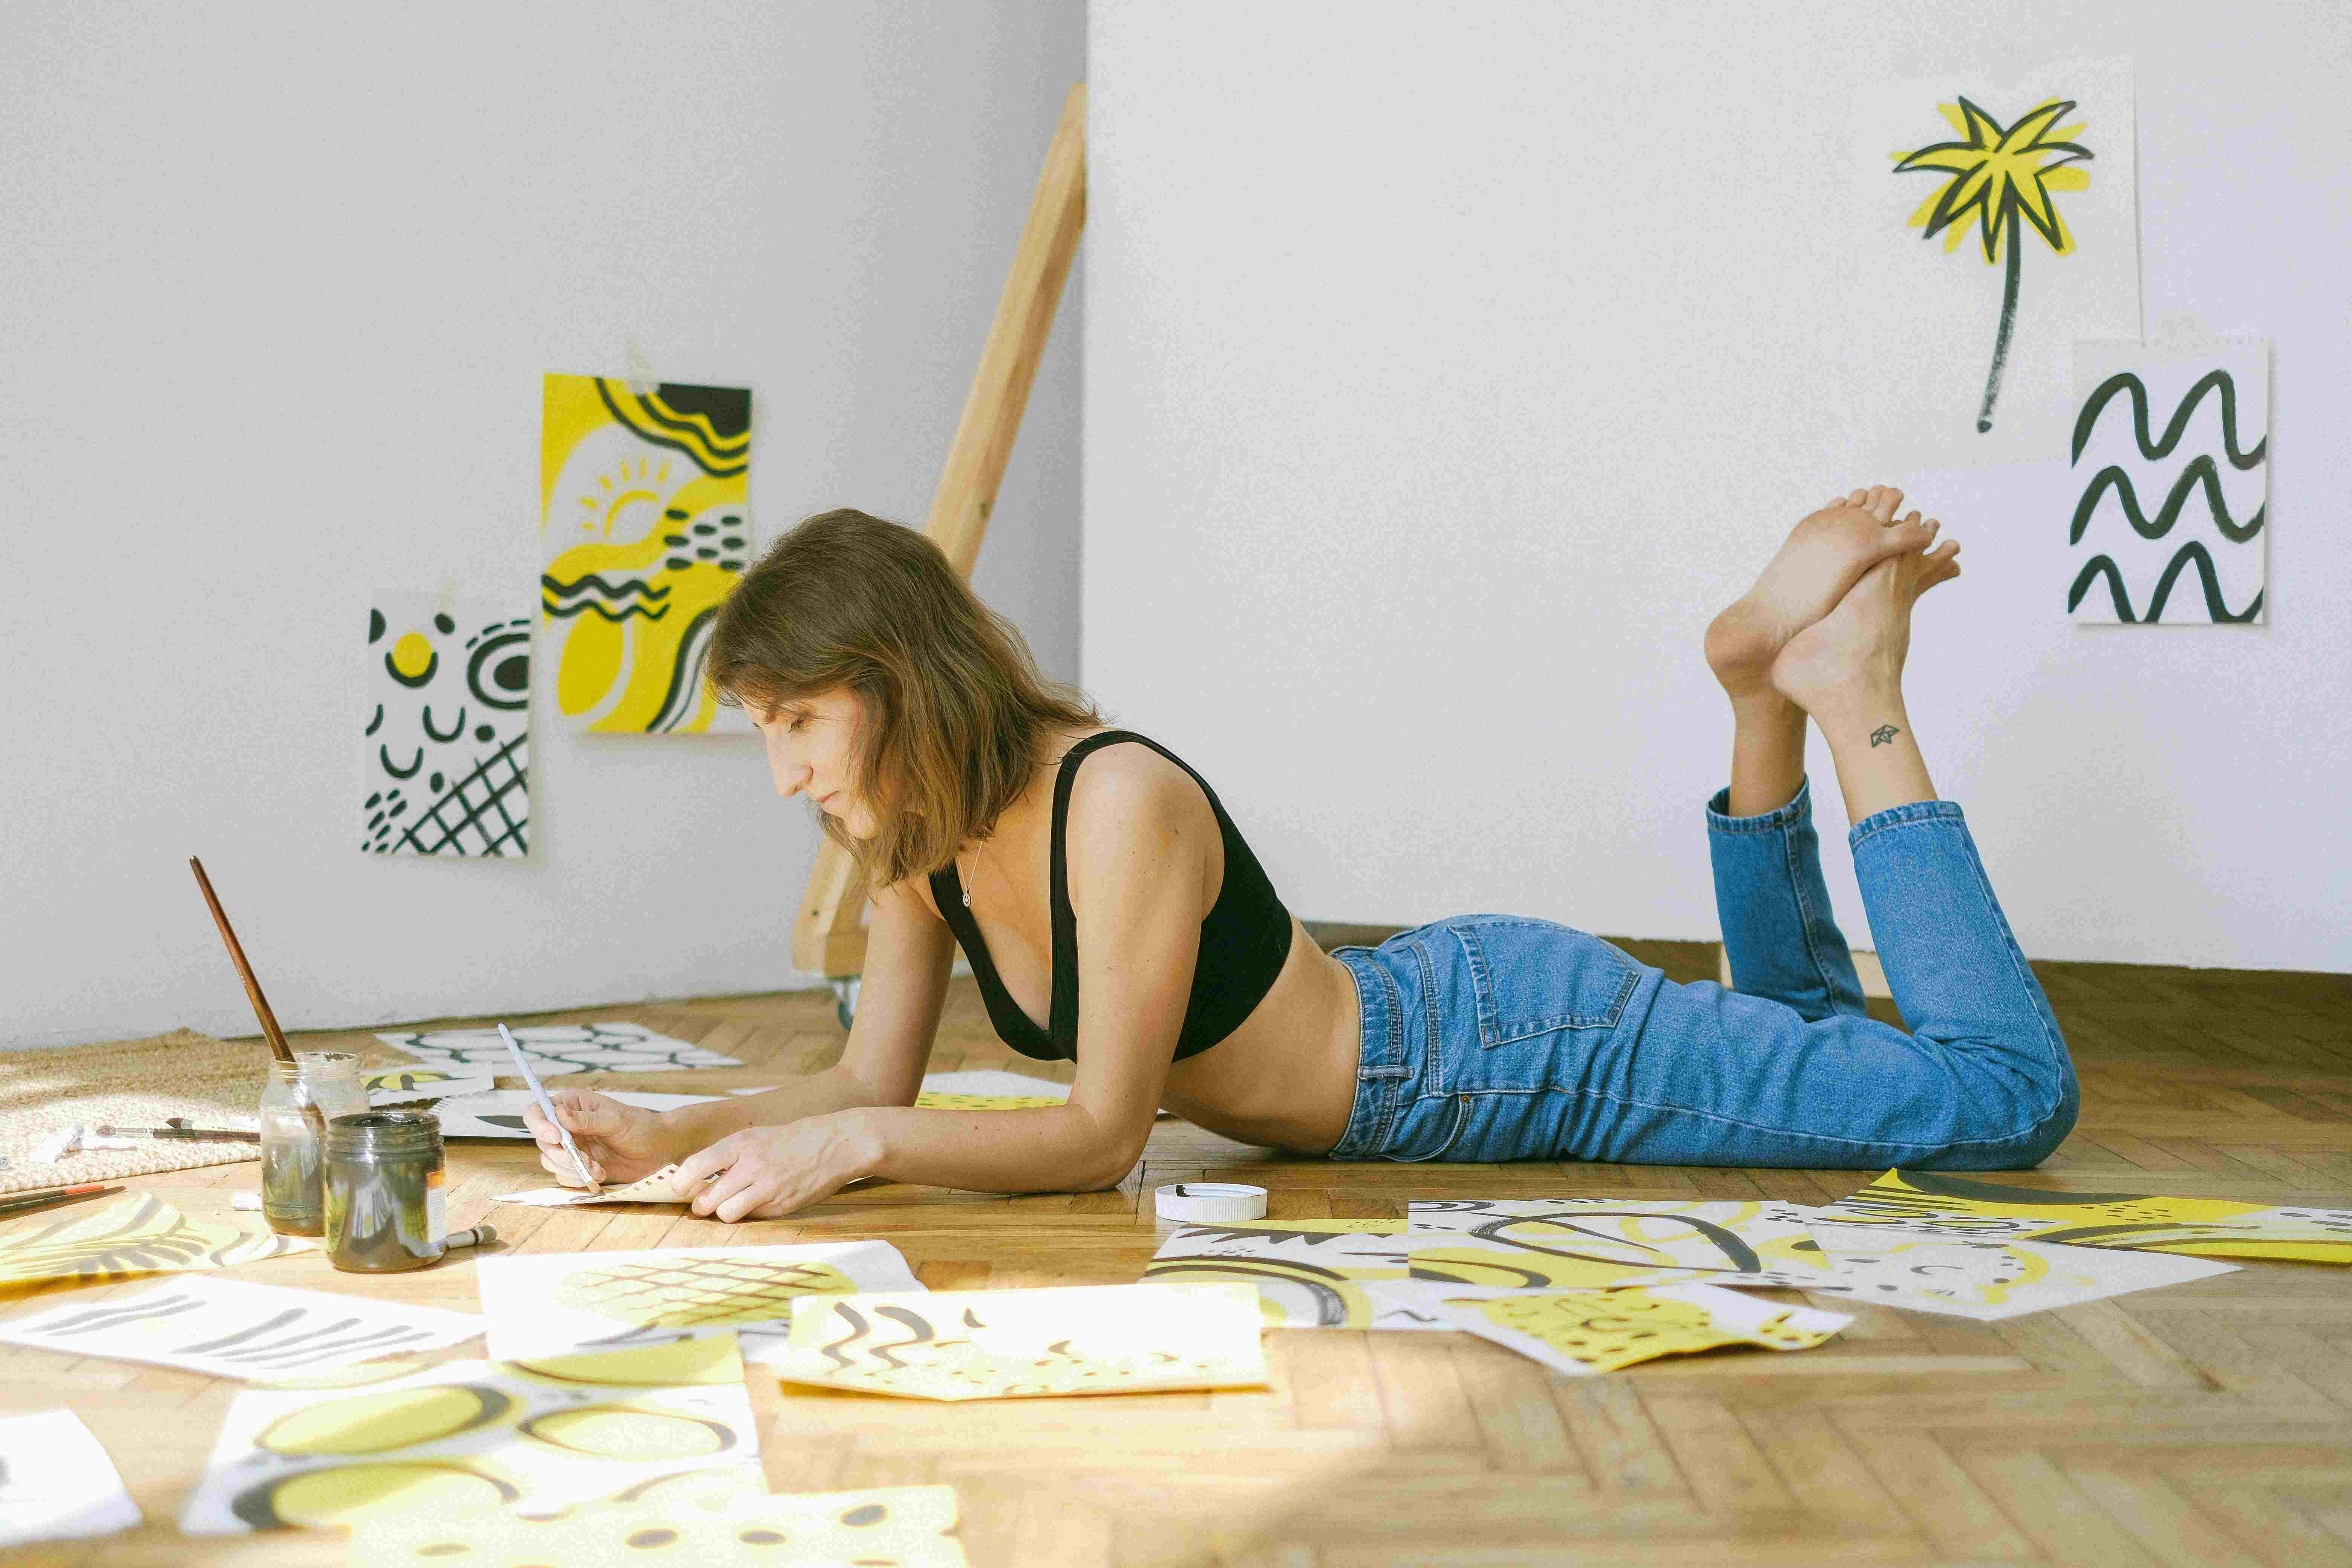 A women laying down on floor and drwaing beautiful art drawings